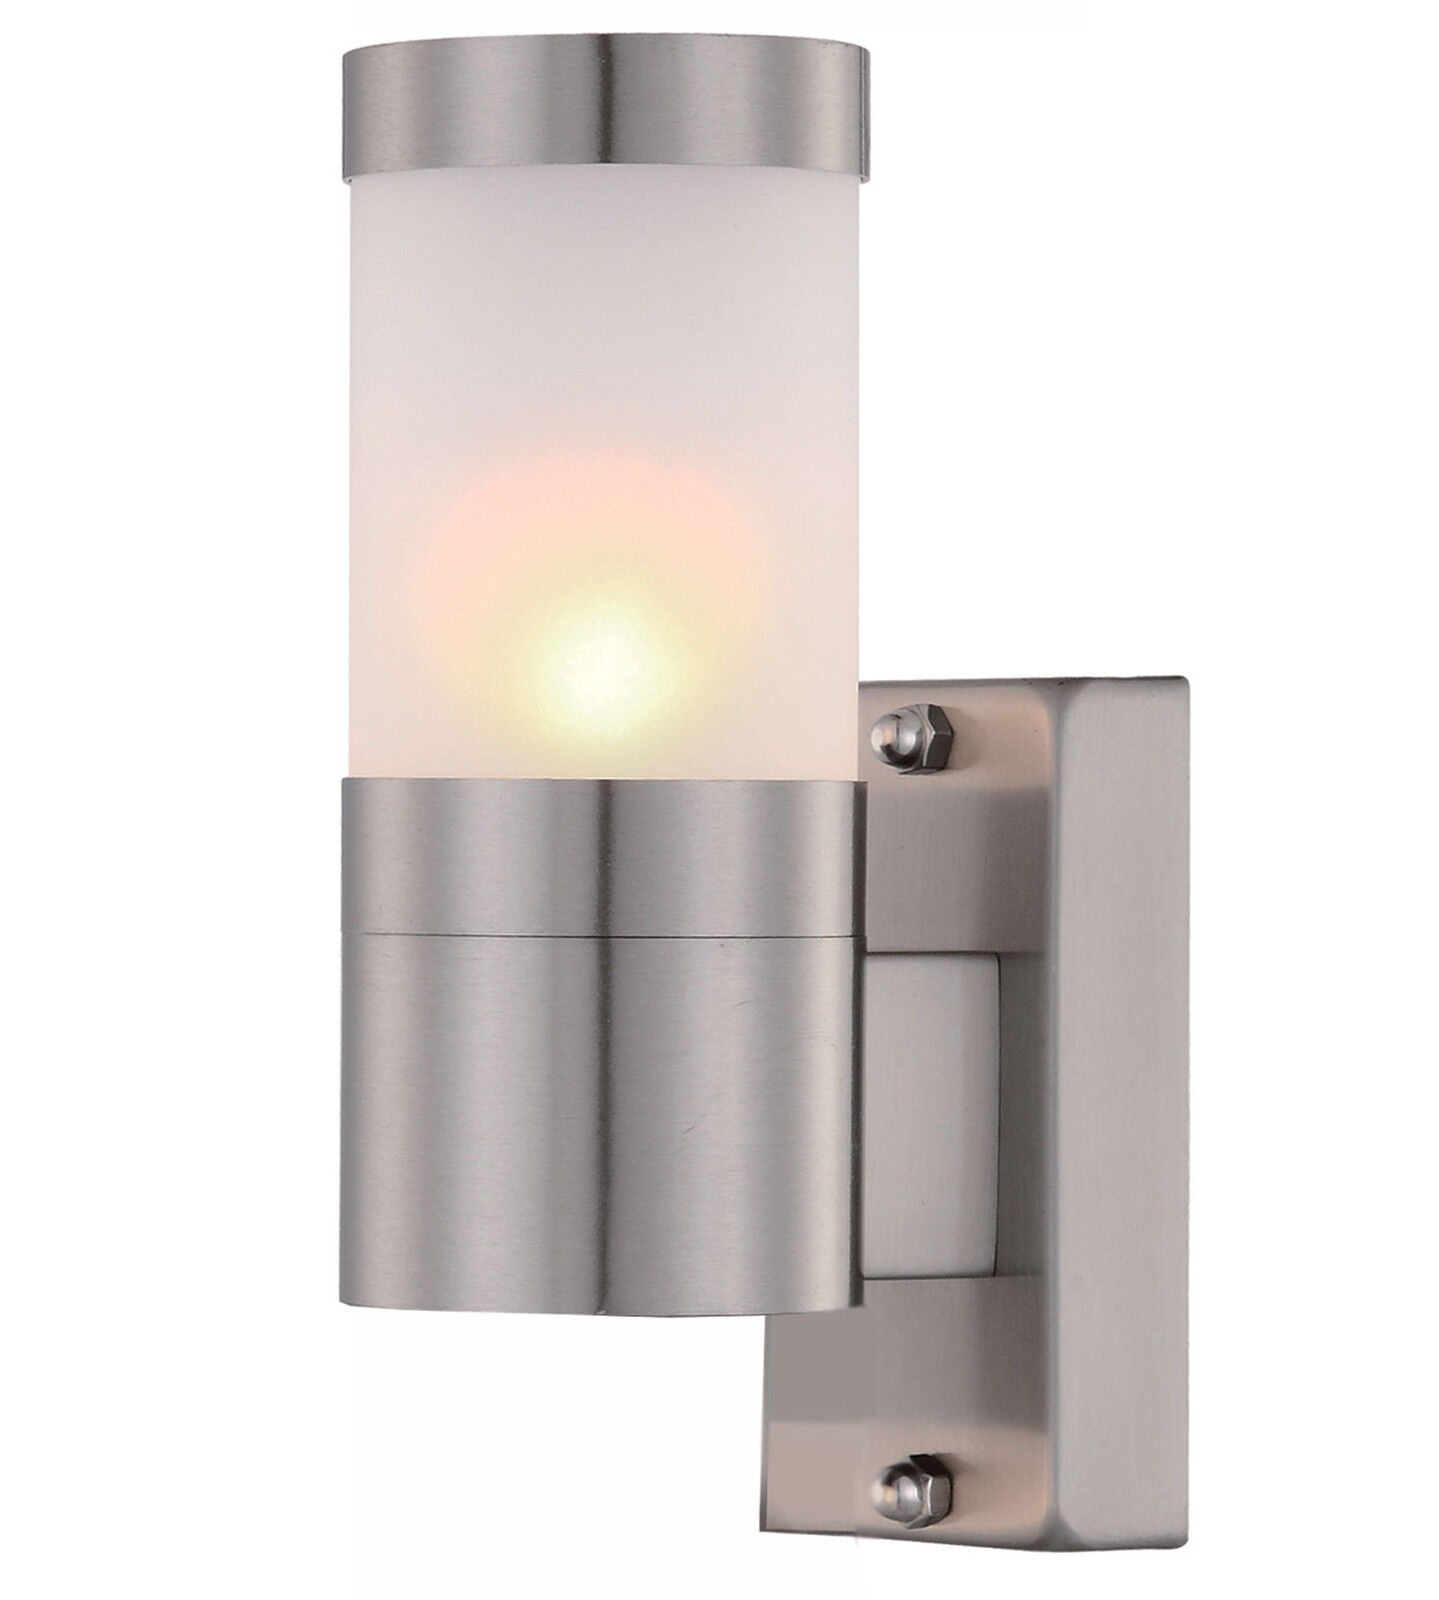 Single Stainless Steel Wall Light Outdoor With Frosted